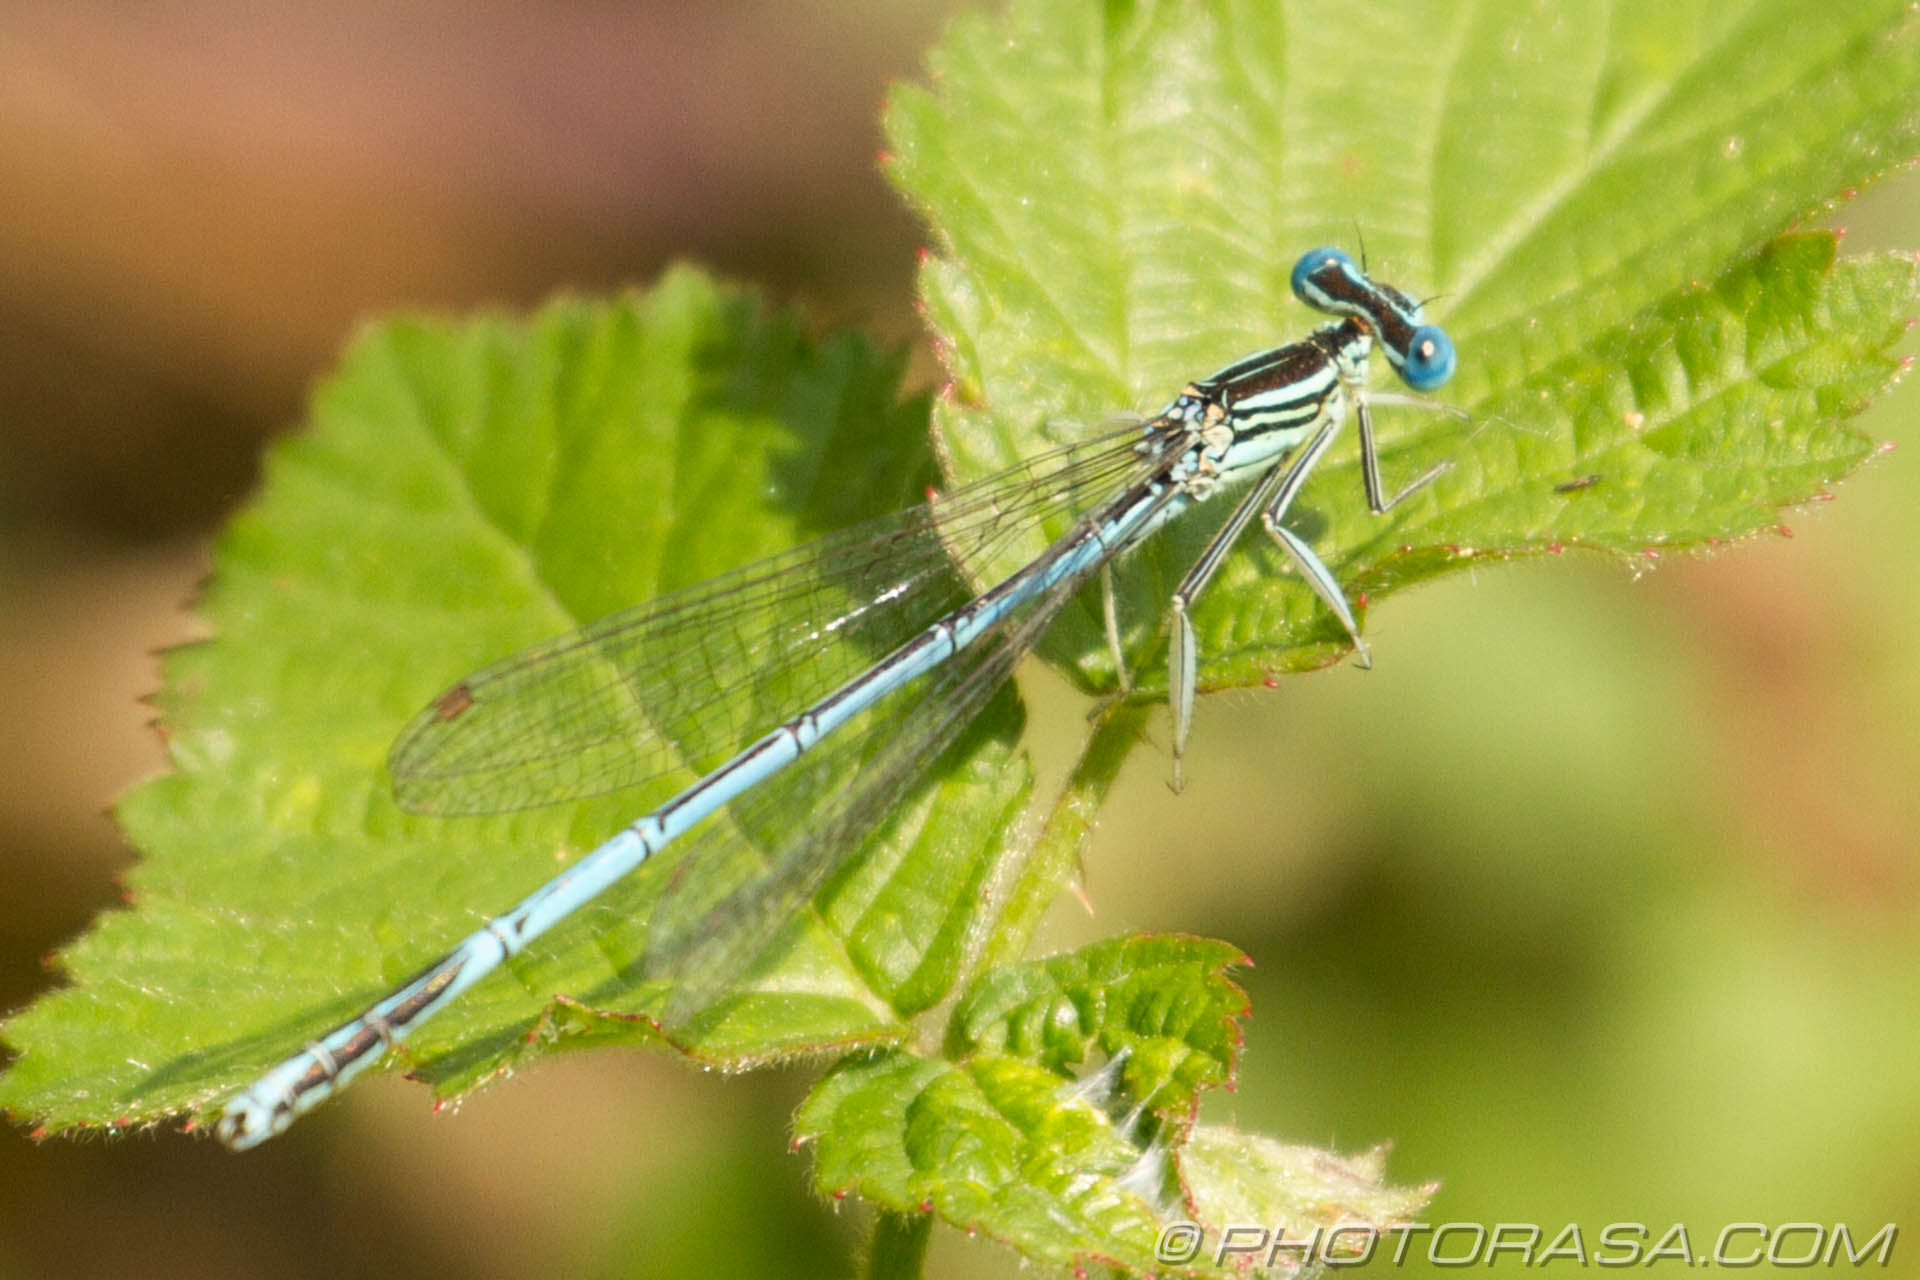 http://photorasa.com/damselflies/blue-and-black-damselfly/